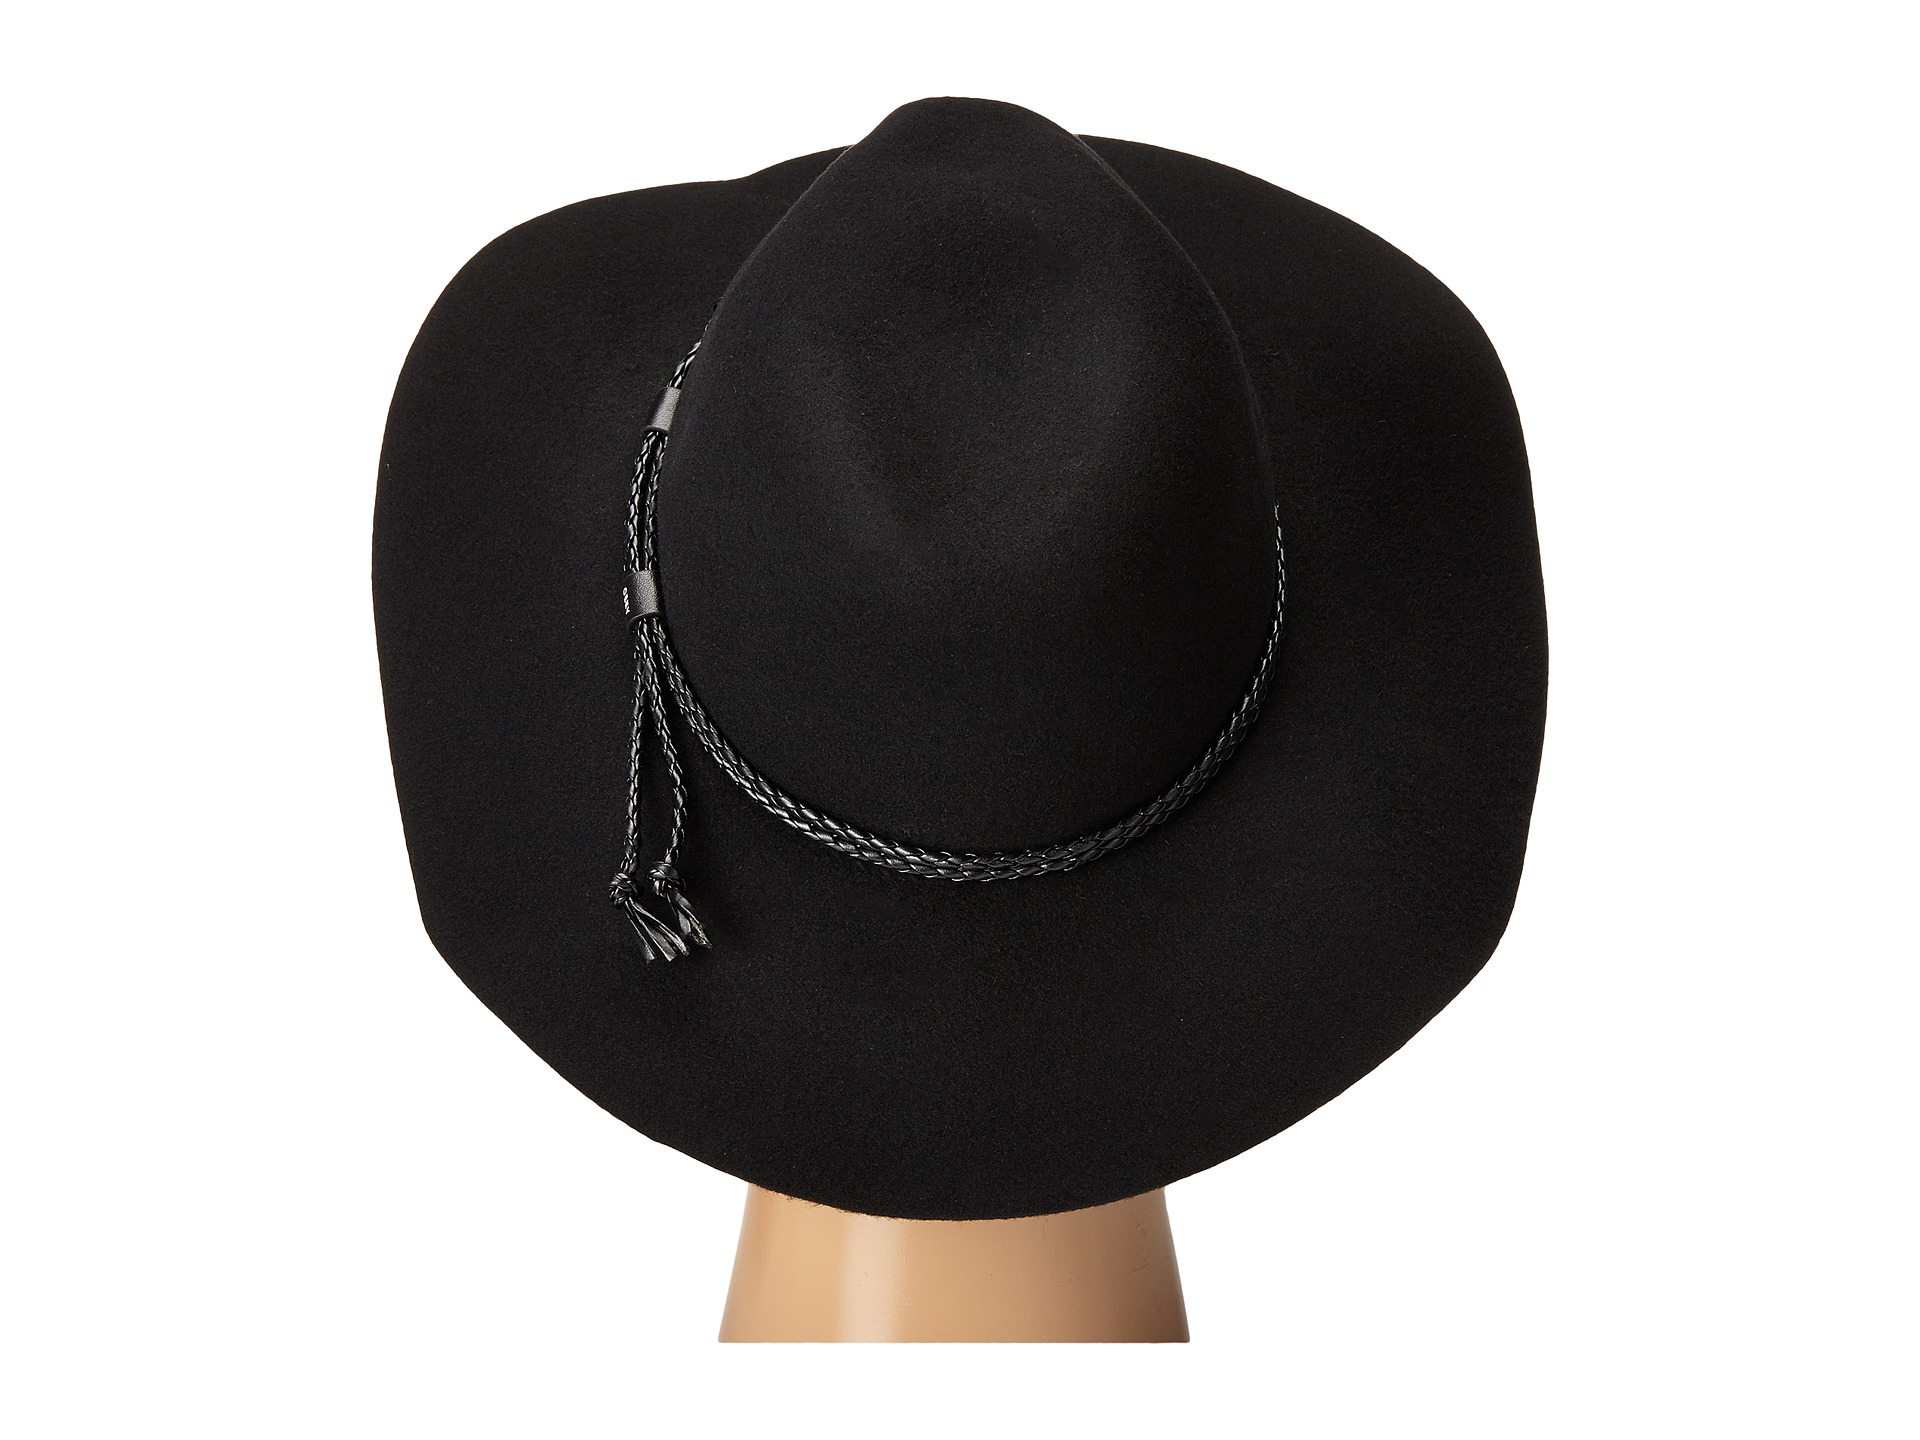 obey madeline hat black zappos free shipping both ways